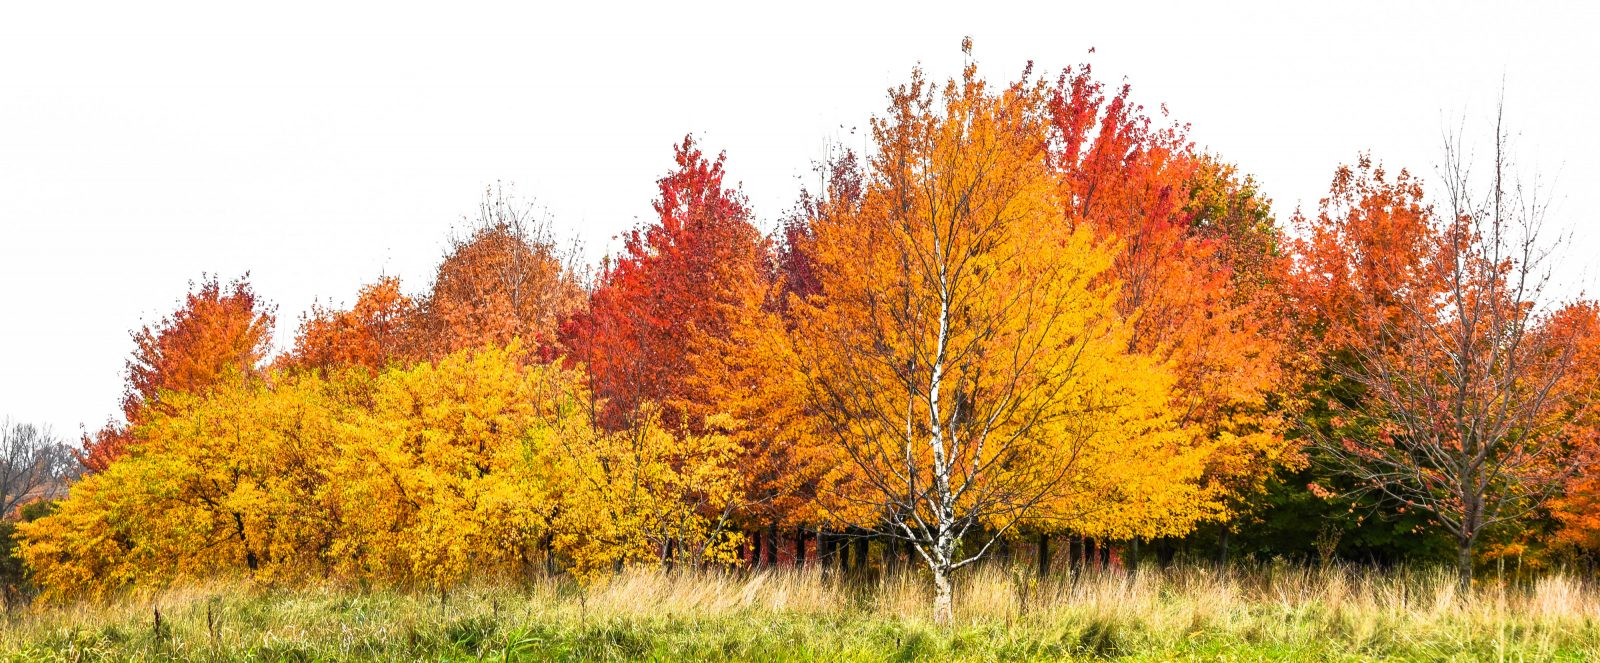 Fall Color at the Minnesota Arboretum